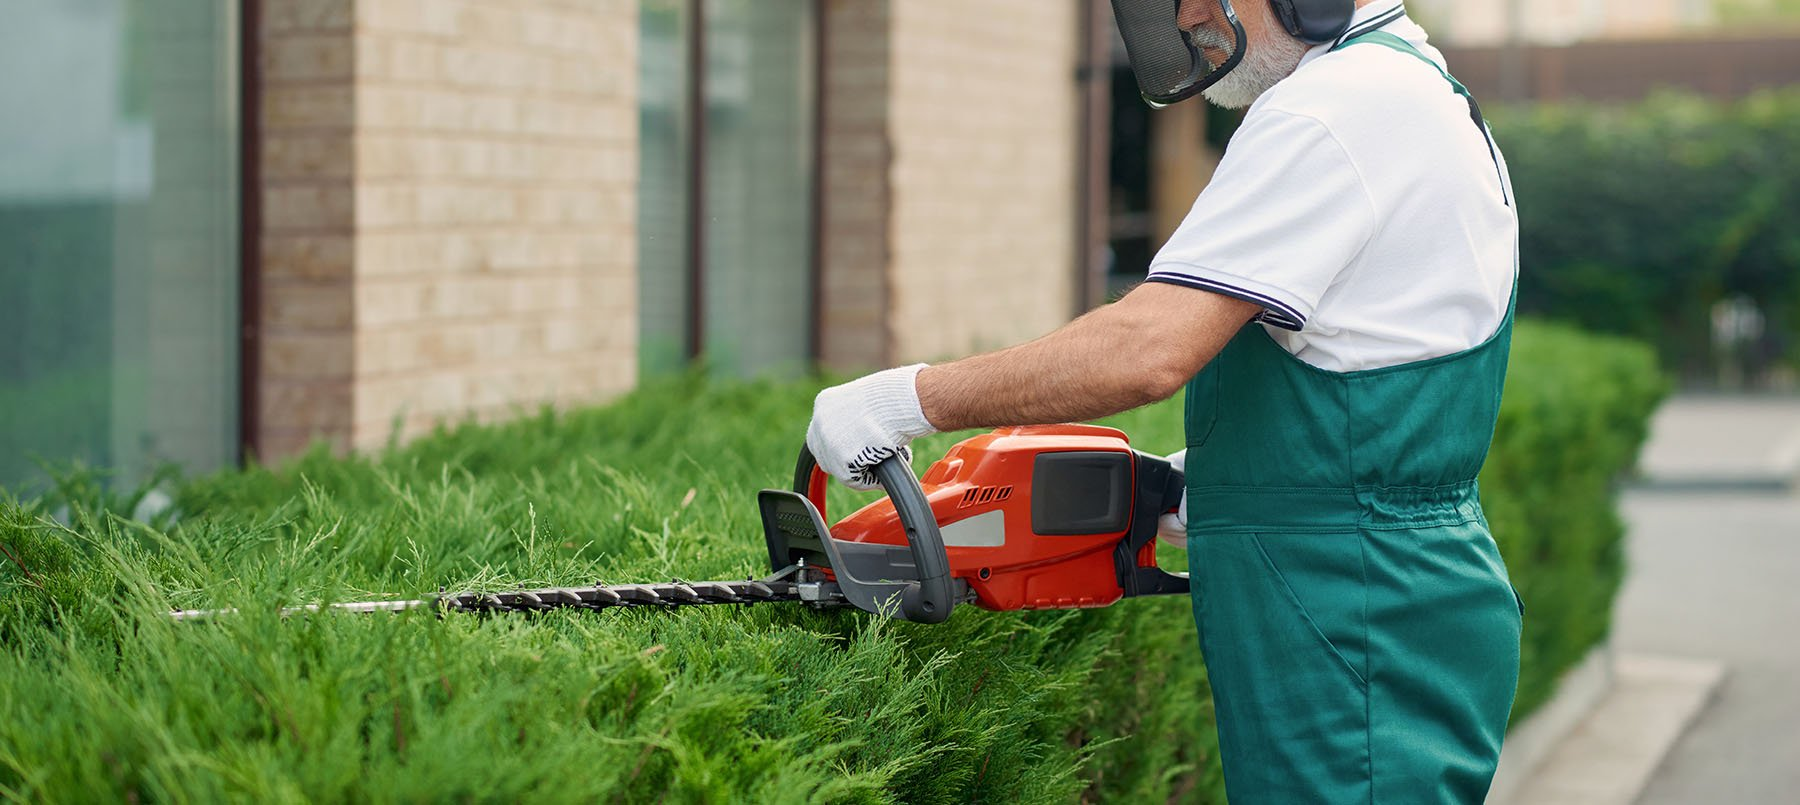 Professional exterior landscaper trimming a hedge to create a neat, well-maintained appearance to impress visitors